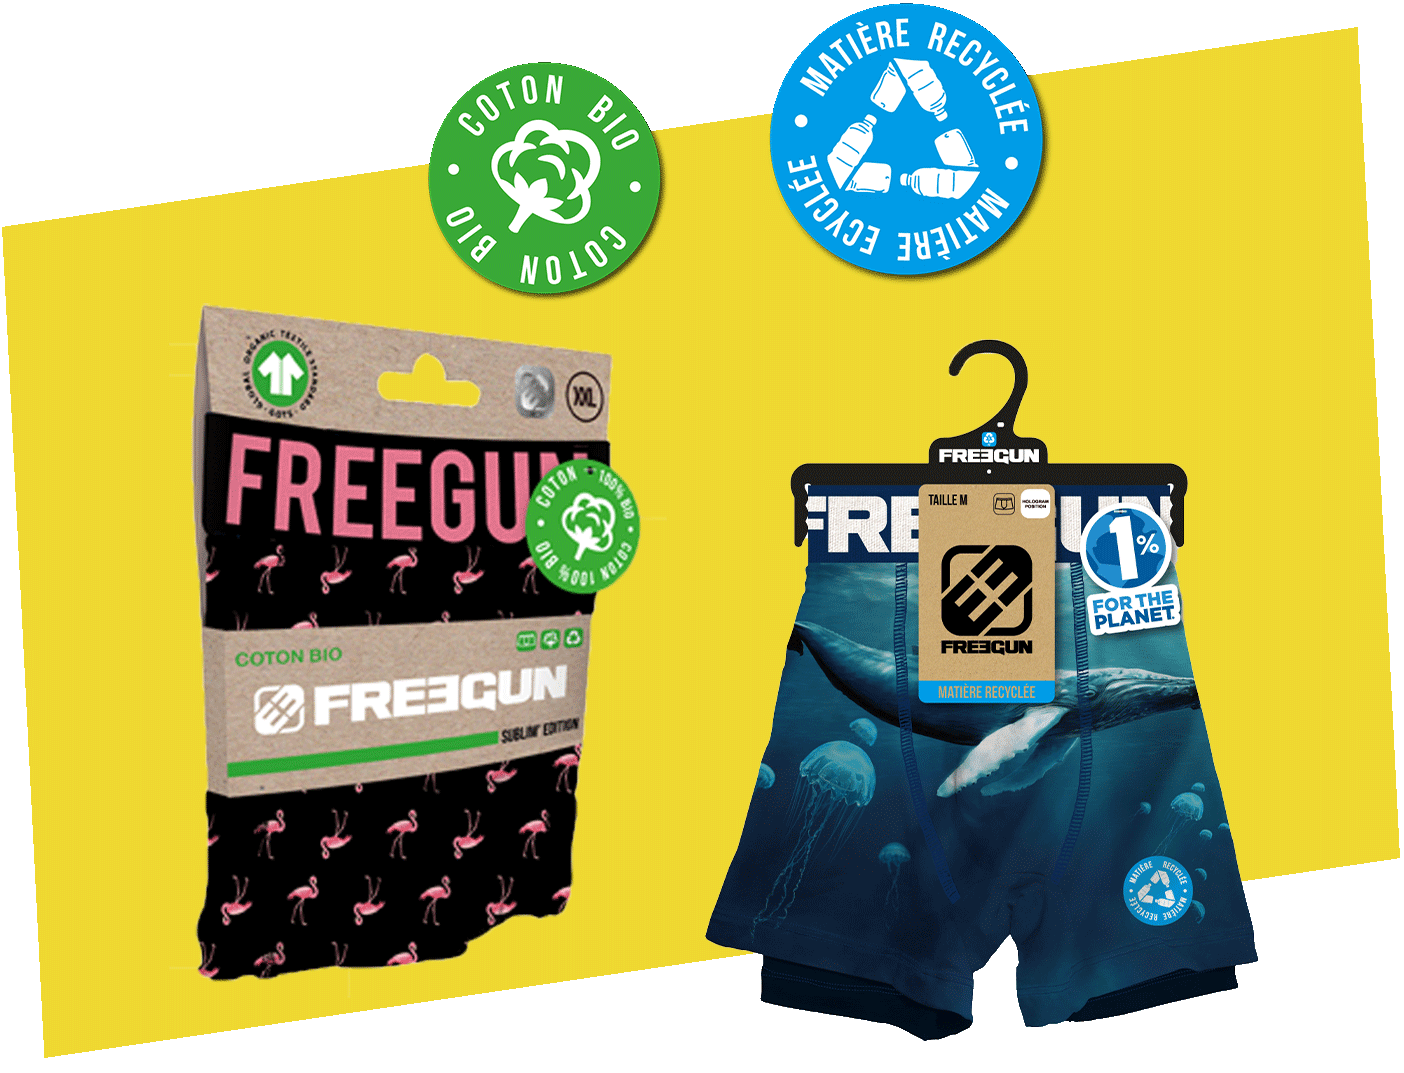 commitment freegun boxers organic cotton et polyester recycled